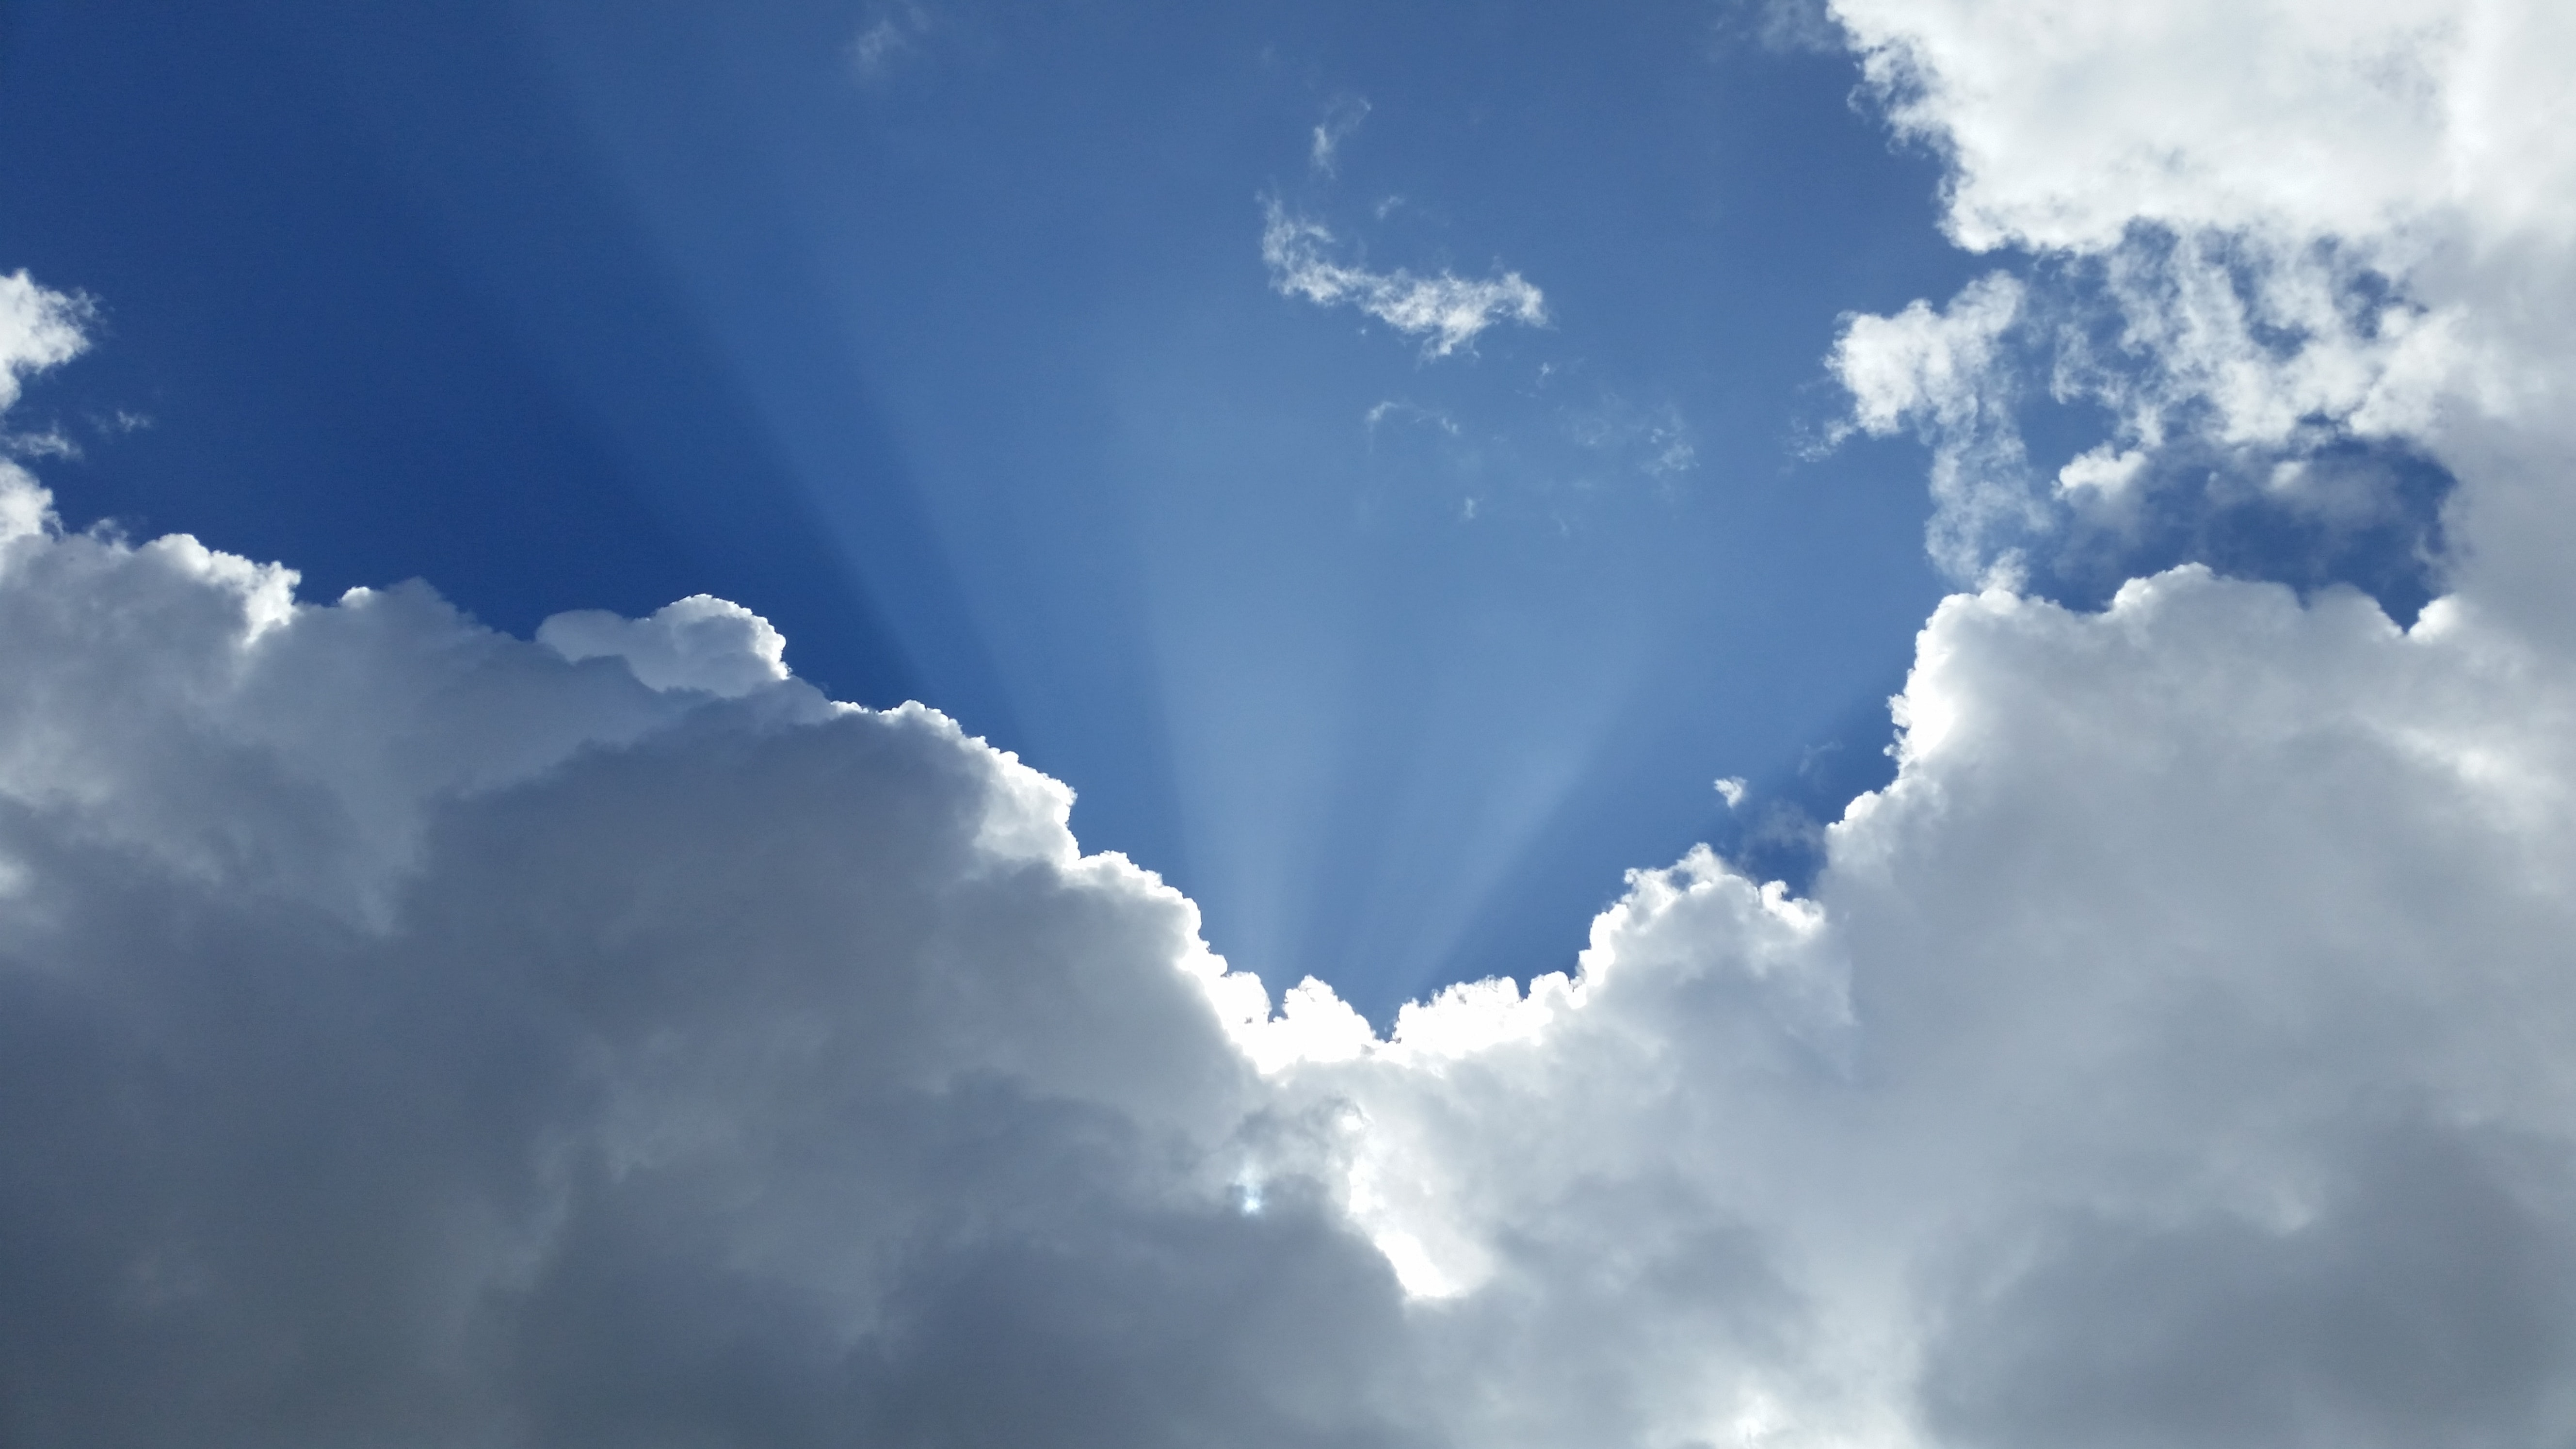 white clouds and blue sky at daytime